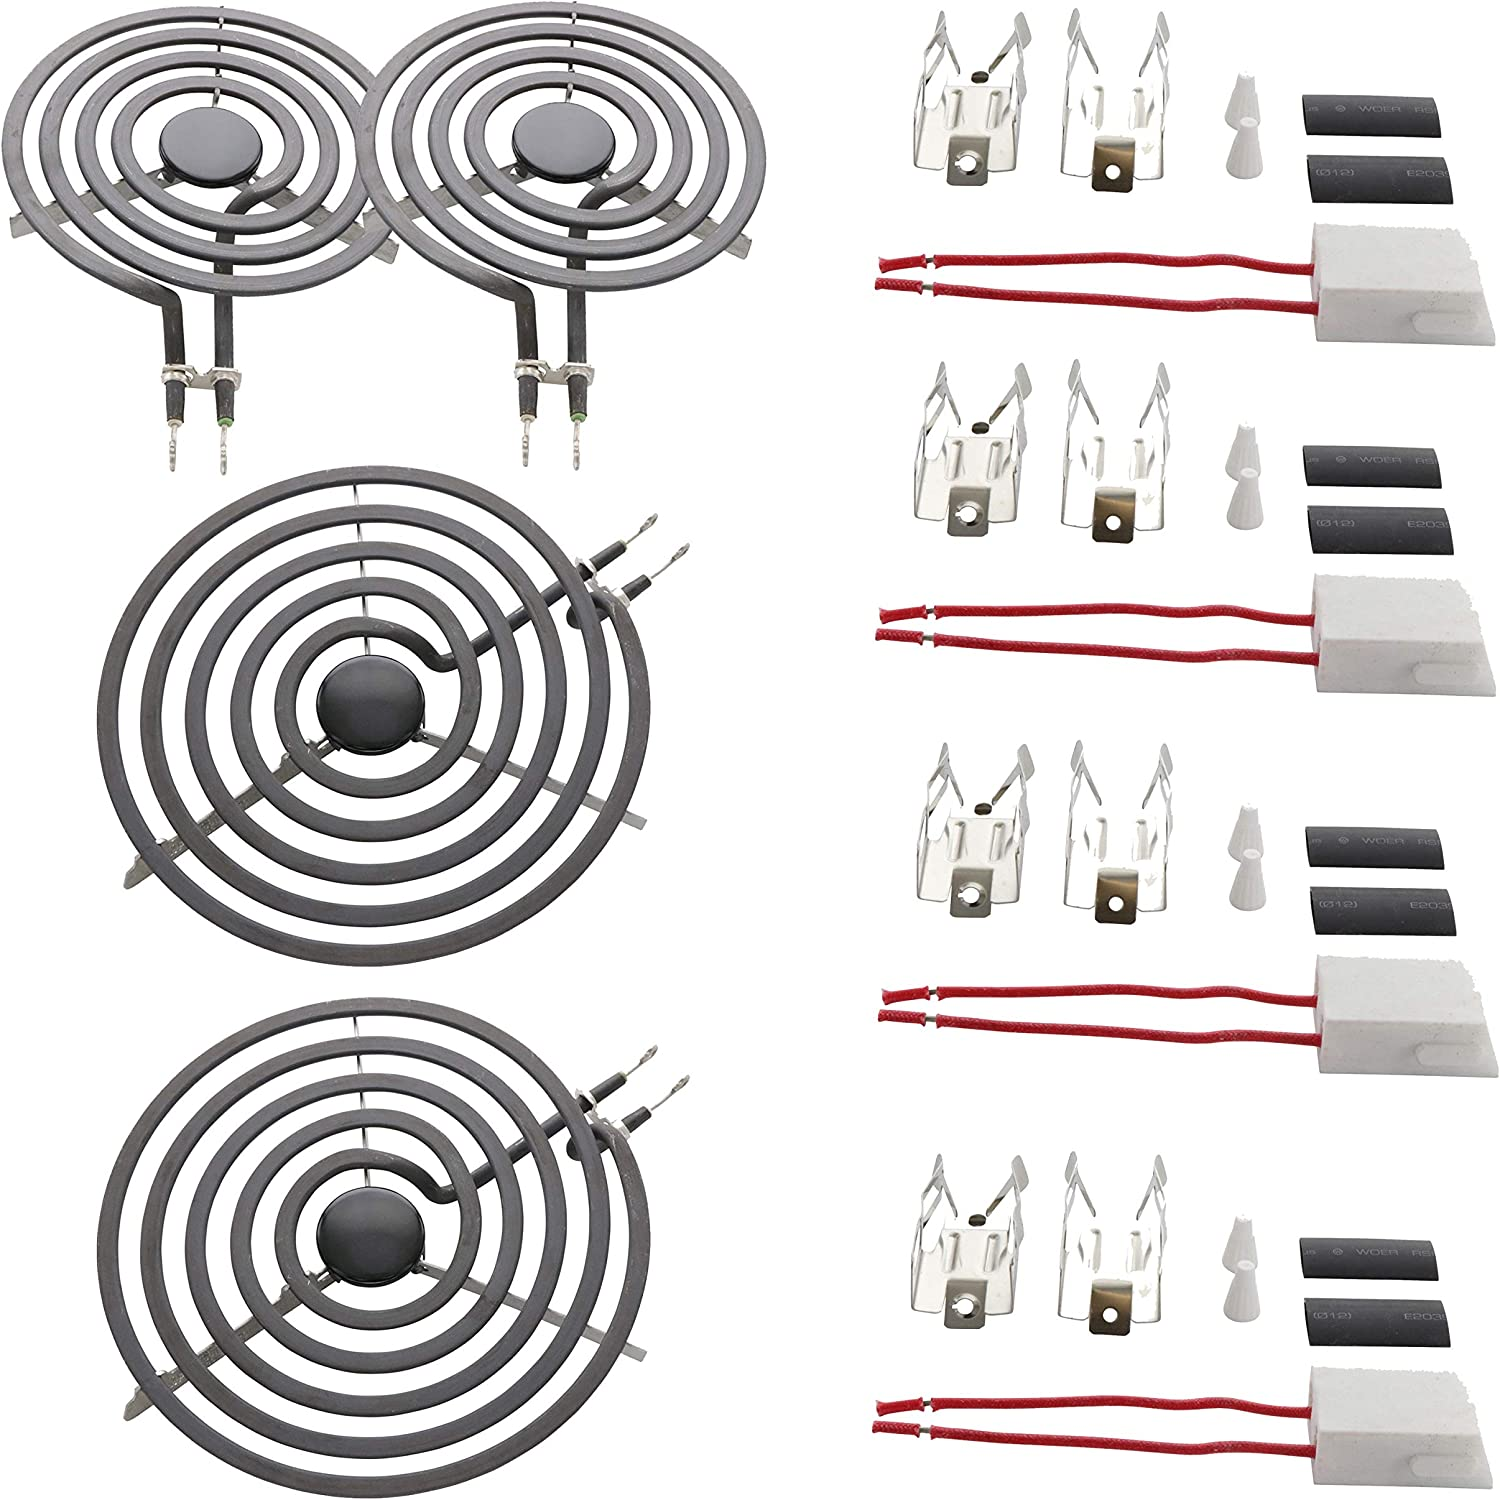 "Kitchen Basics 101 MP22YA Electric Range Surface Burner Coil Set (2-MP15YA 6"" & 2-MP21YA 8"") with 4 High Temperature Ceramic Plug-In Terminal Block Kit Replacement for Whirlpool, KitchenAid, Maytag"